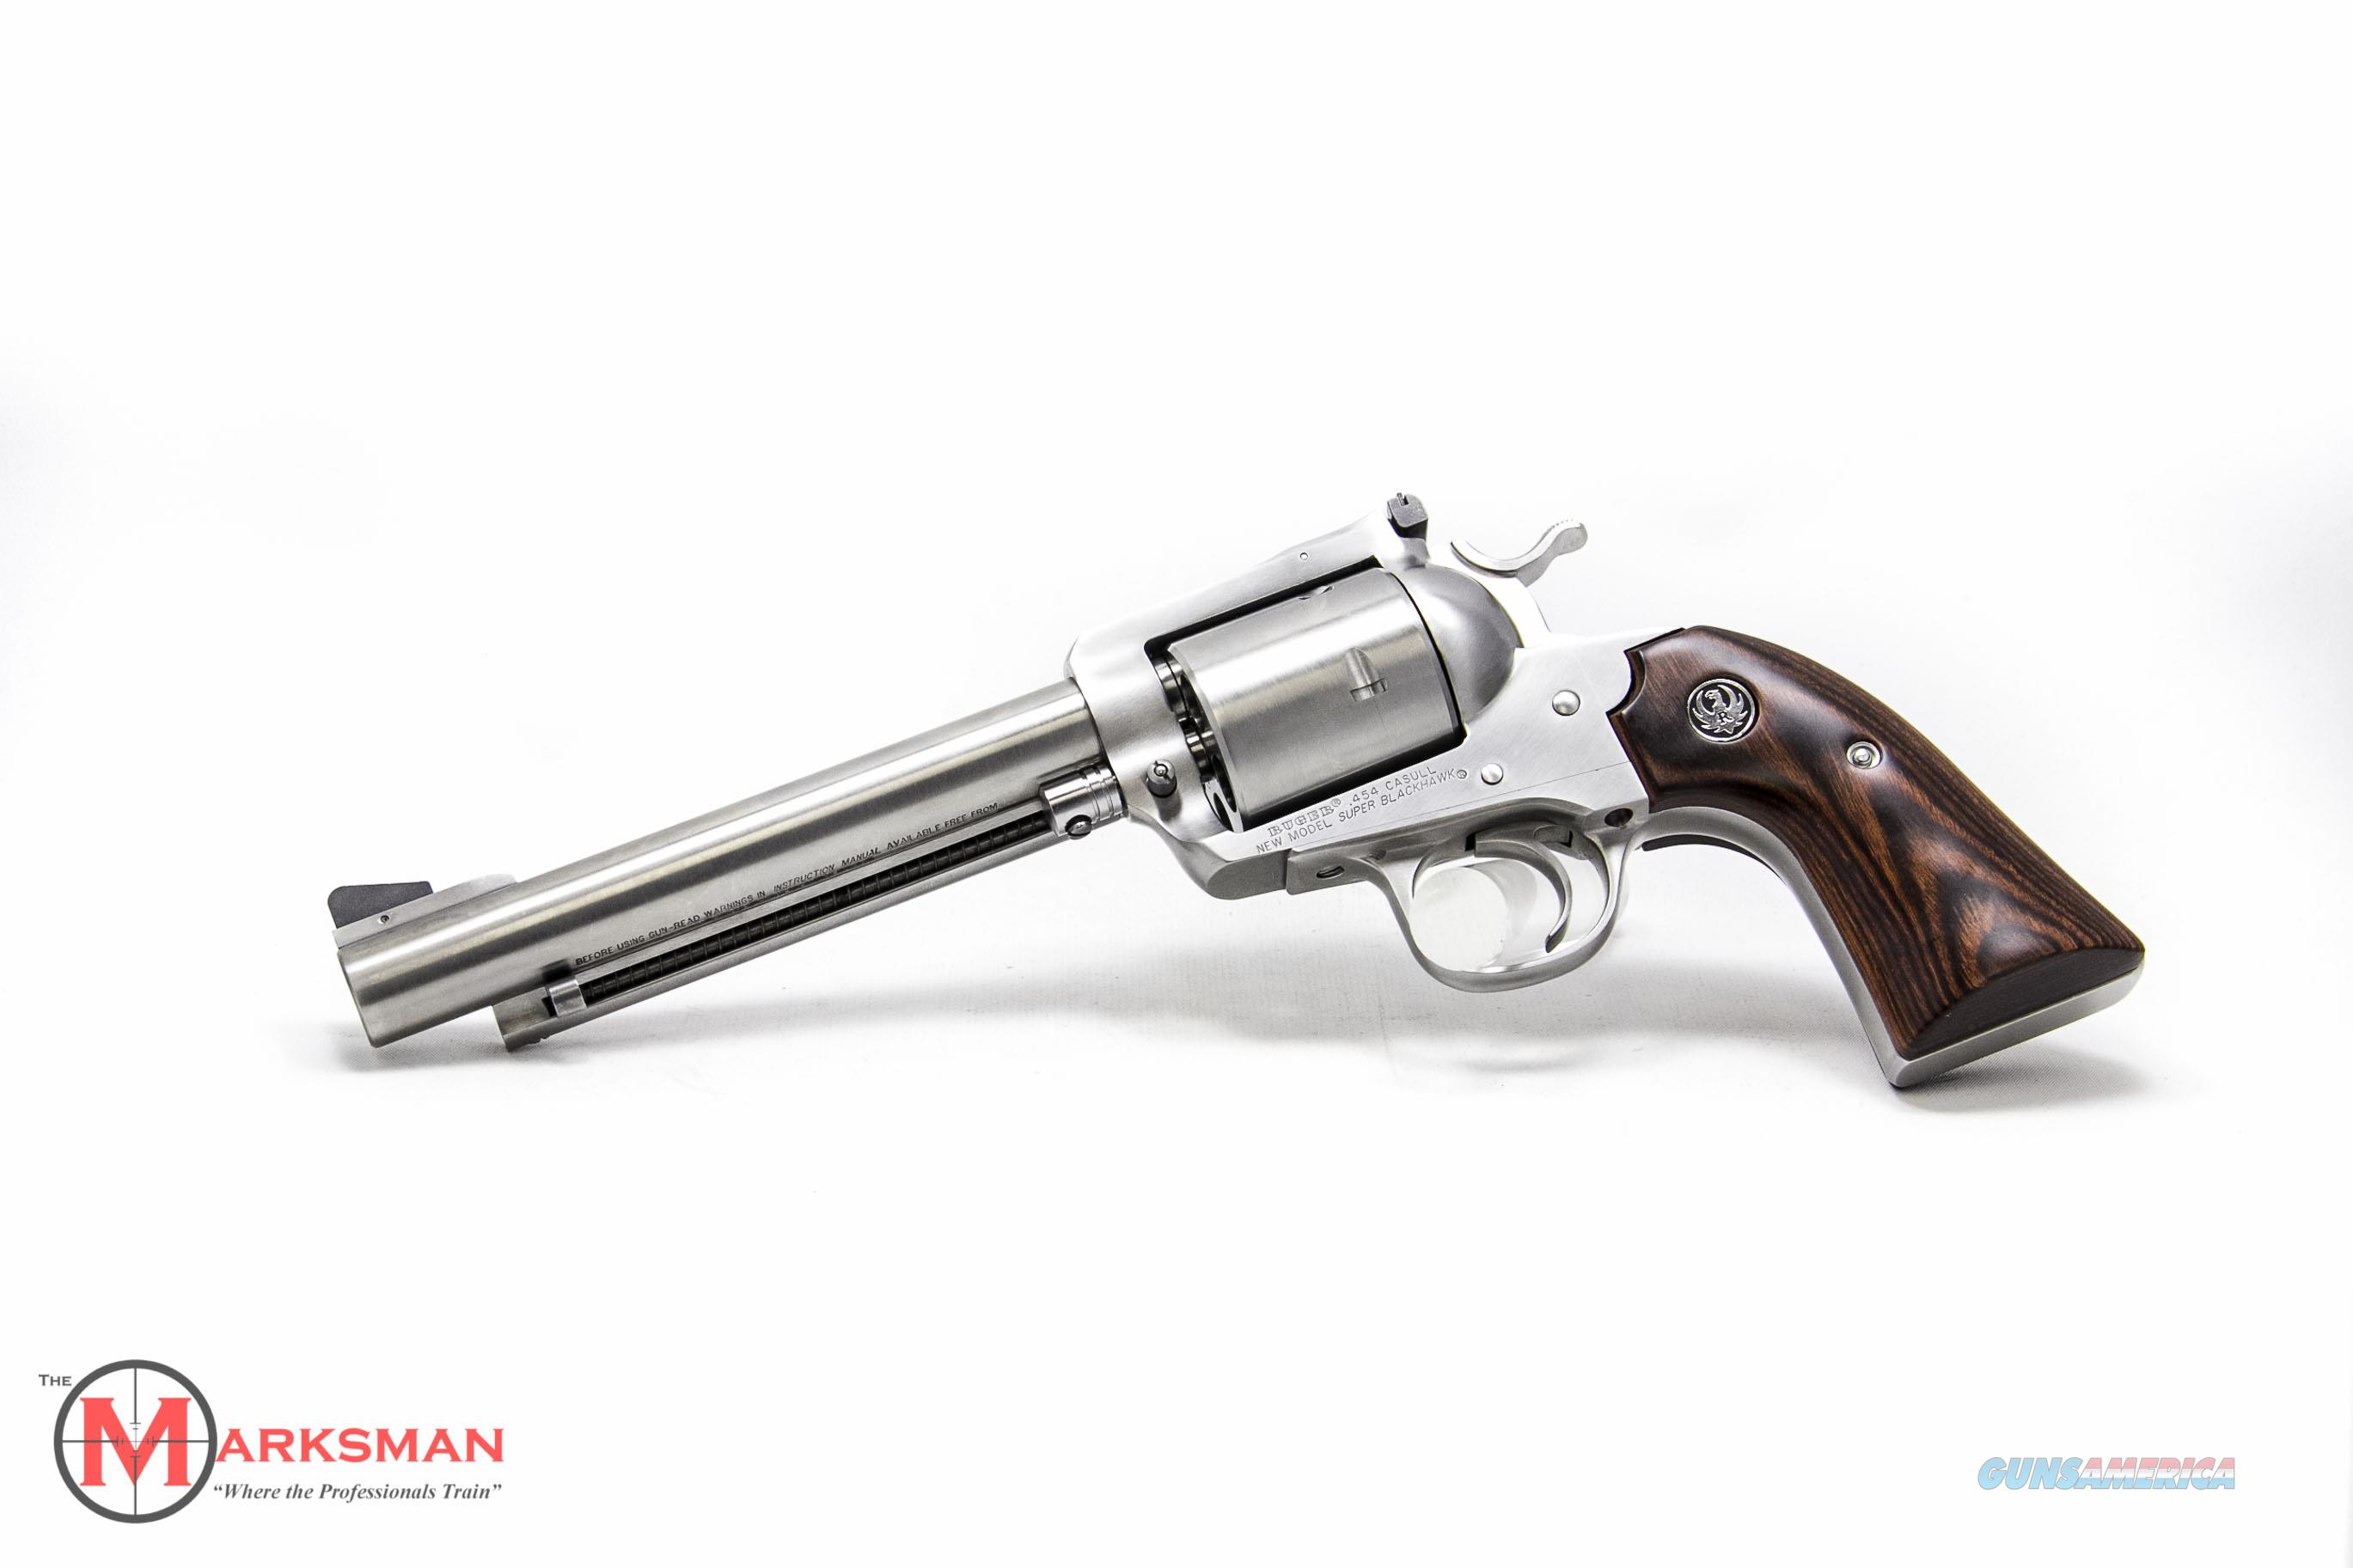 Ruger Stainless Bisley Super Blackhawk, .454 Casull NEW Lipsey's Exclusive  Guns > Pistols > Ruger Single Action Revolvers > Blackhawk Type